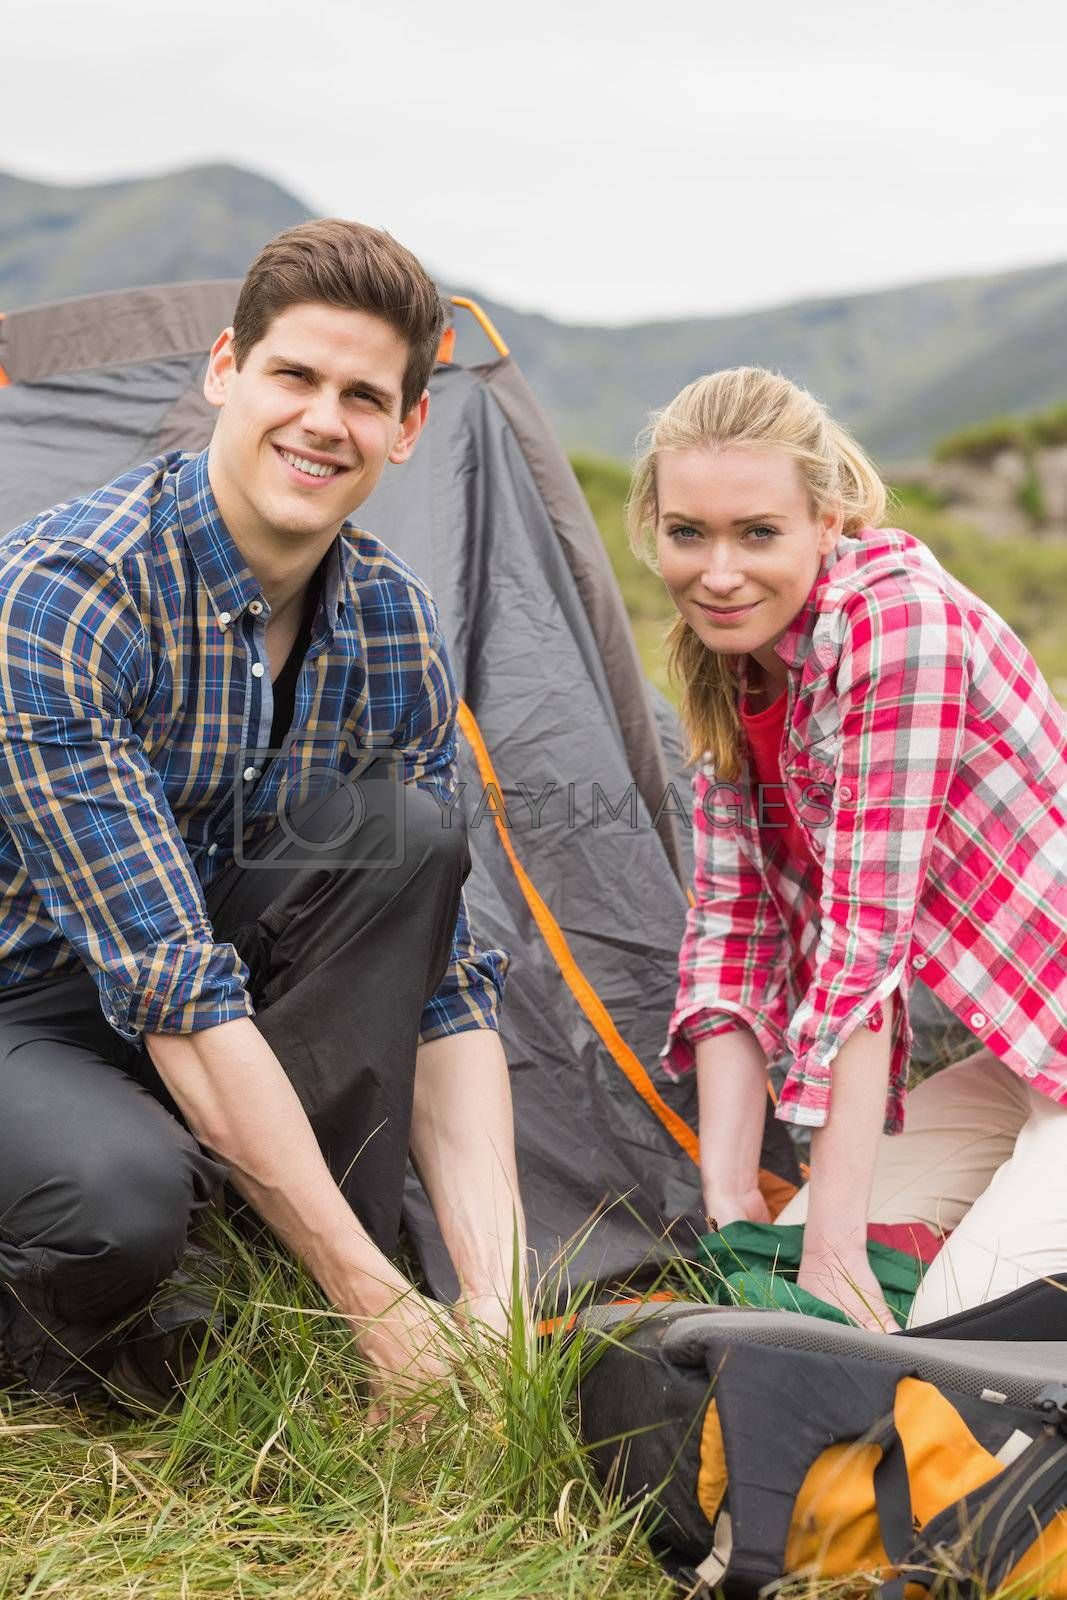 Happy couple pitching their tent together by Wavebreakmedia